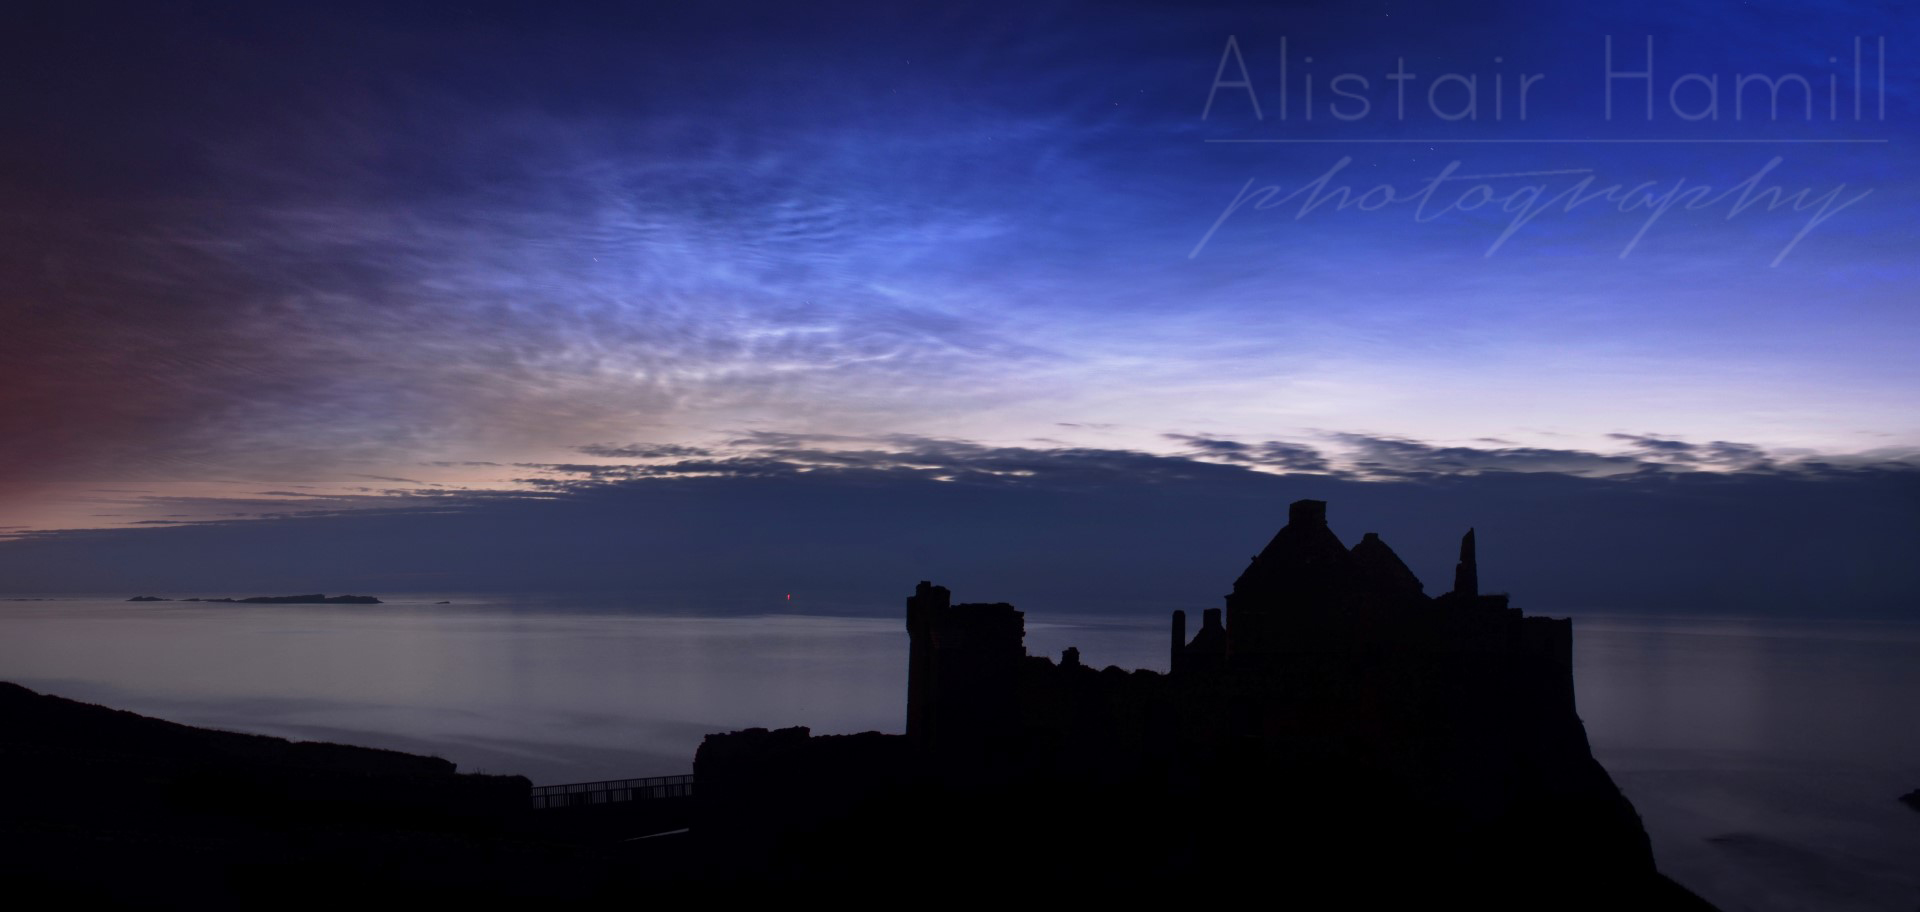 Another noctilucent display from last summer, this time as seen over Dunluce Castle